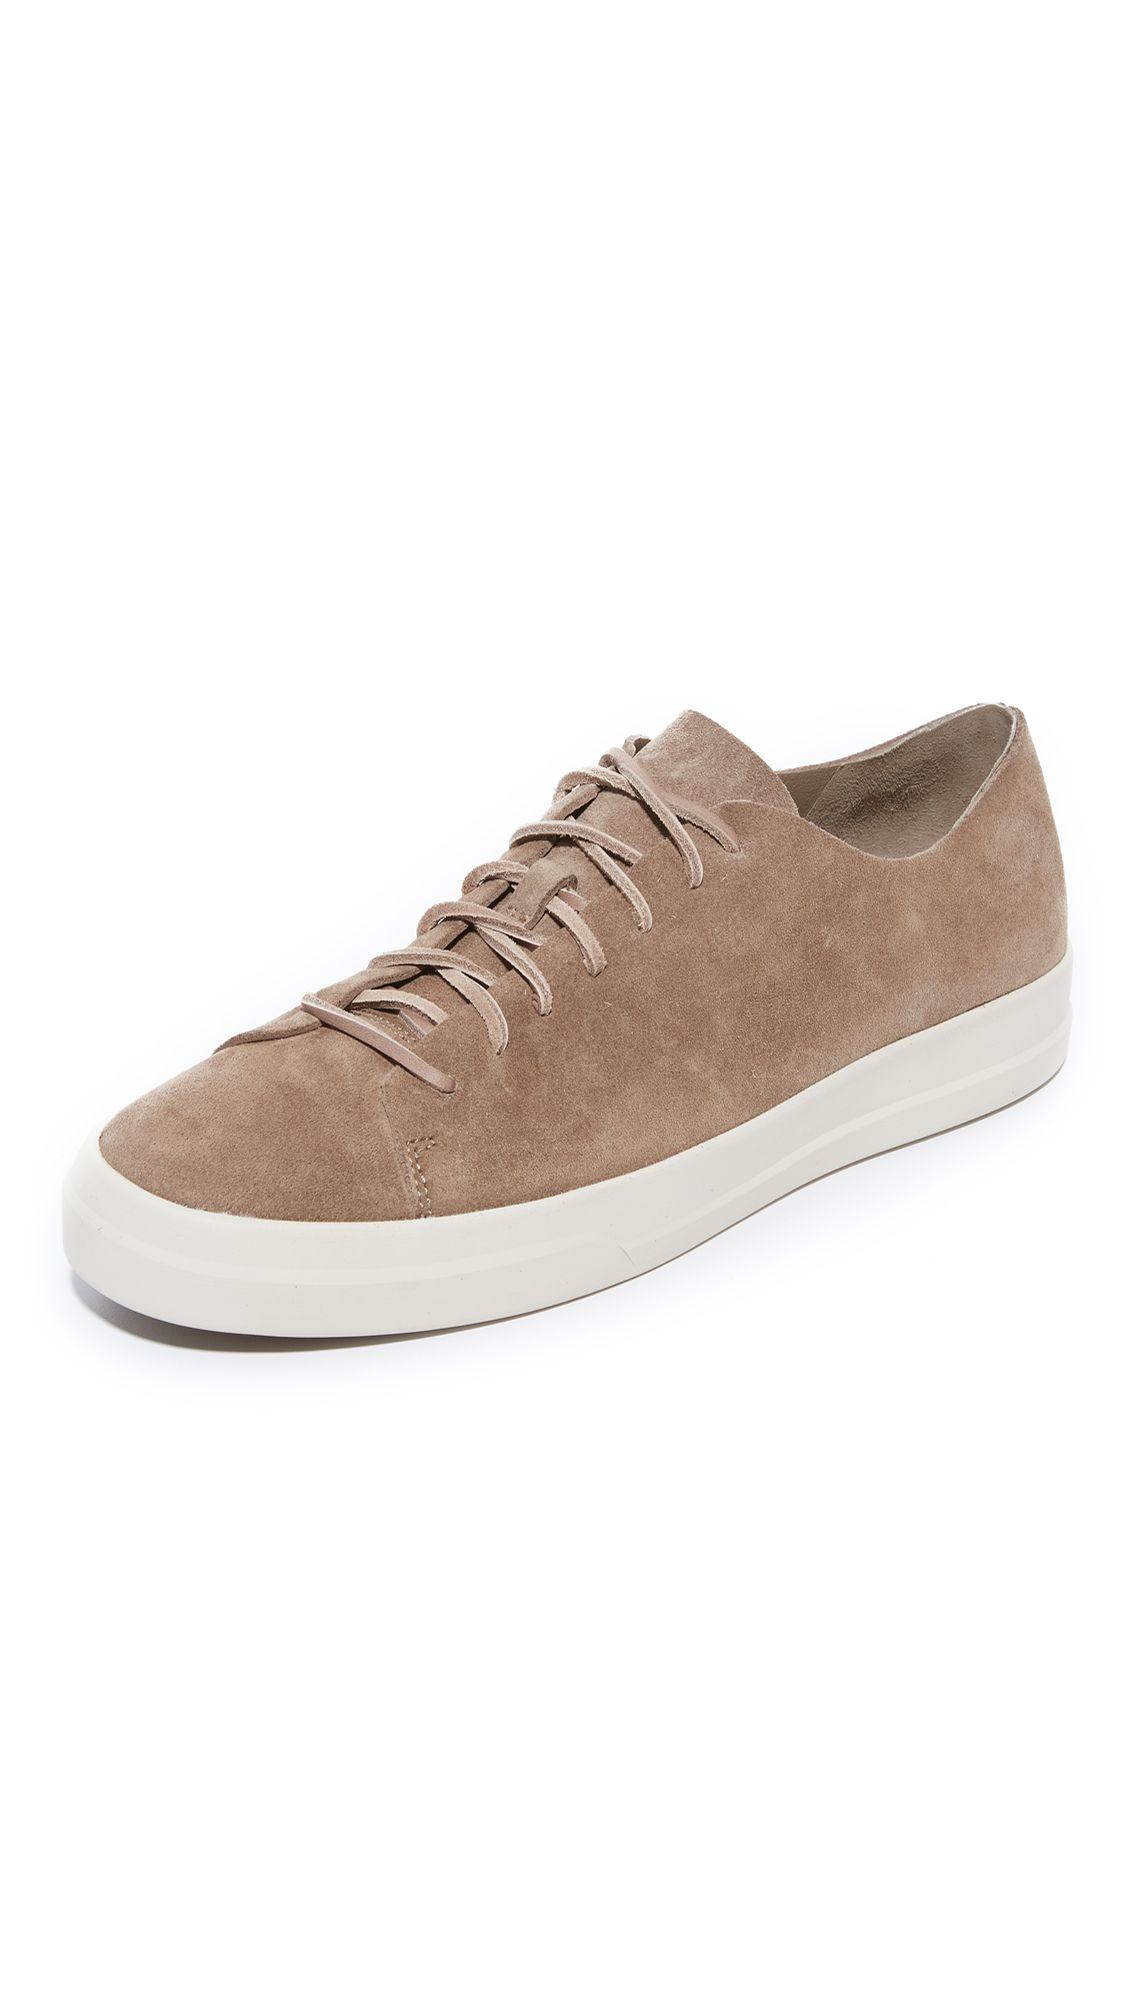 Explore Suede Sneakers, Men, and more!